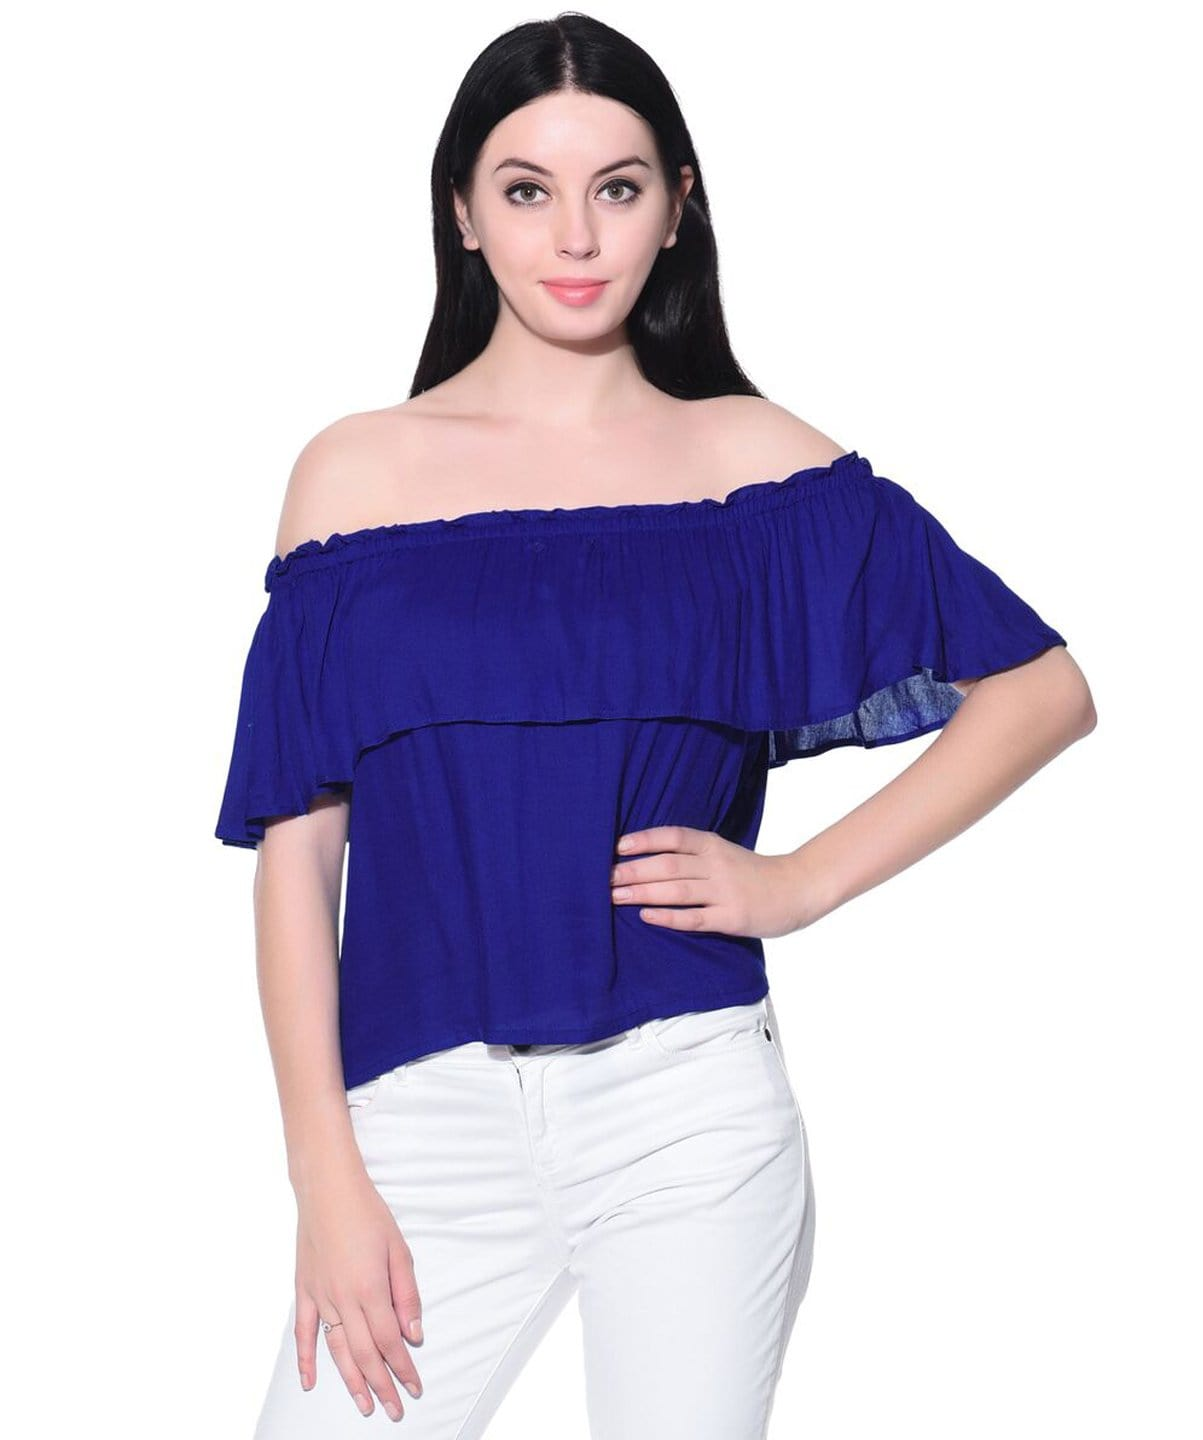 Solid Blue Ruffle Off Shoulder Rayon Top. BUY 1 GET 3